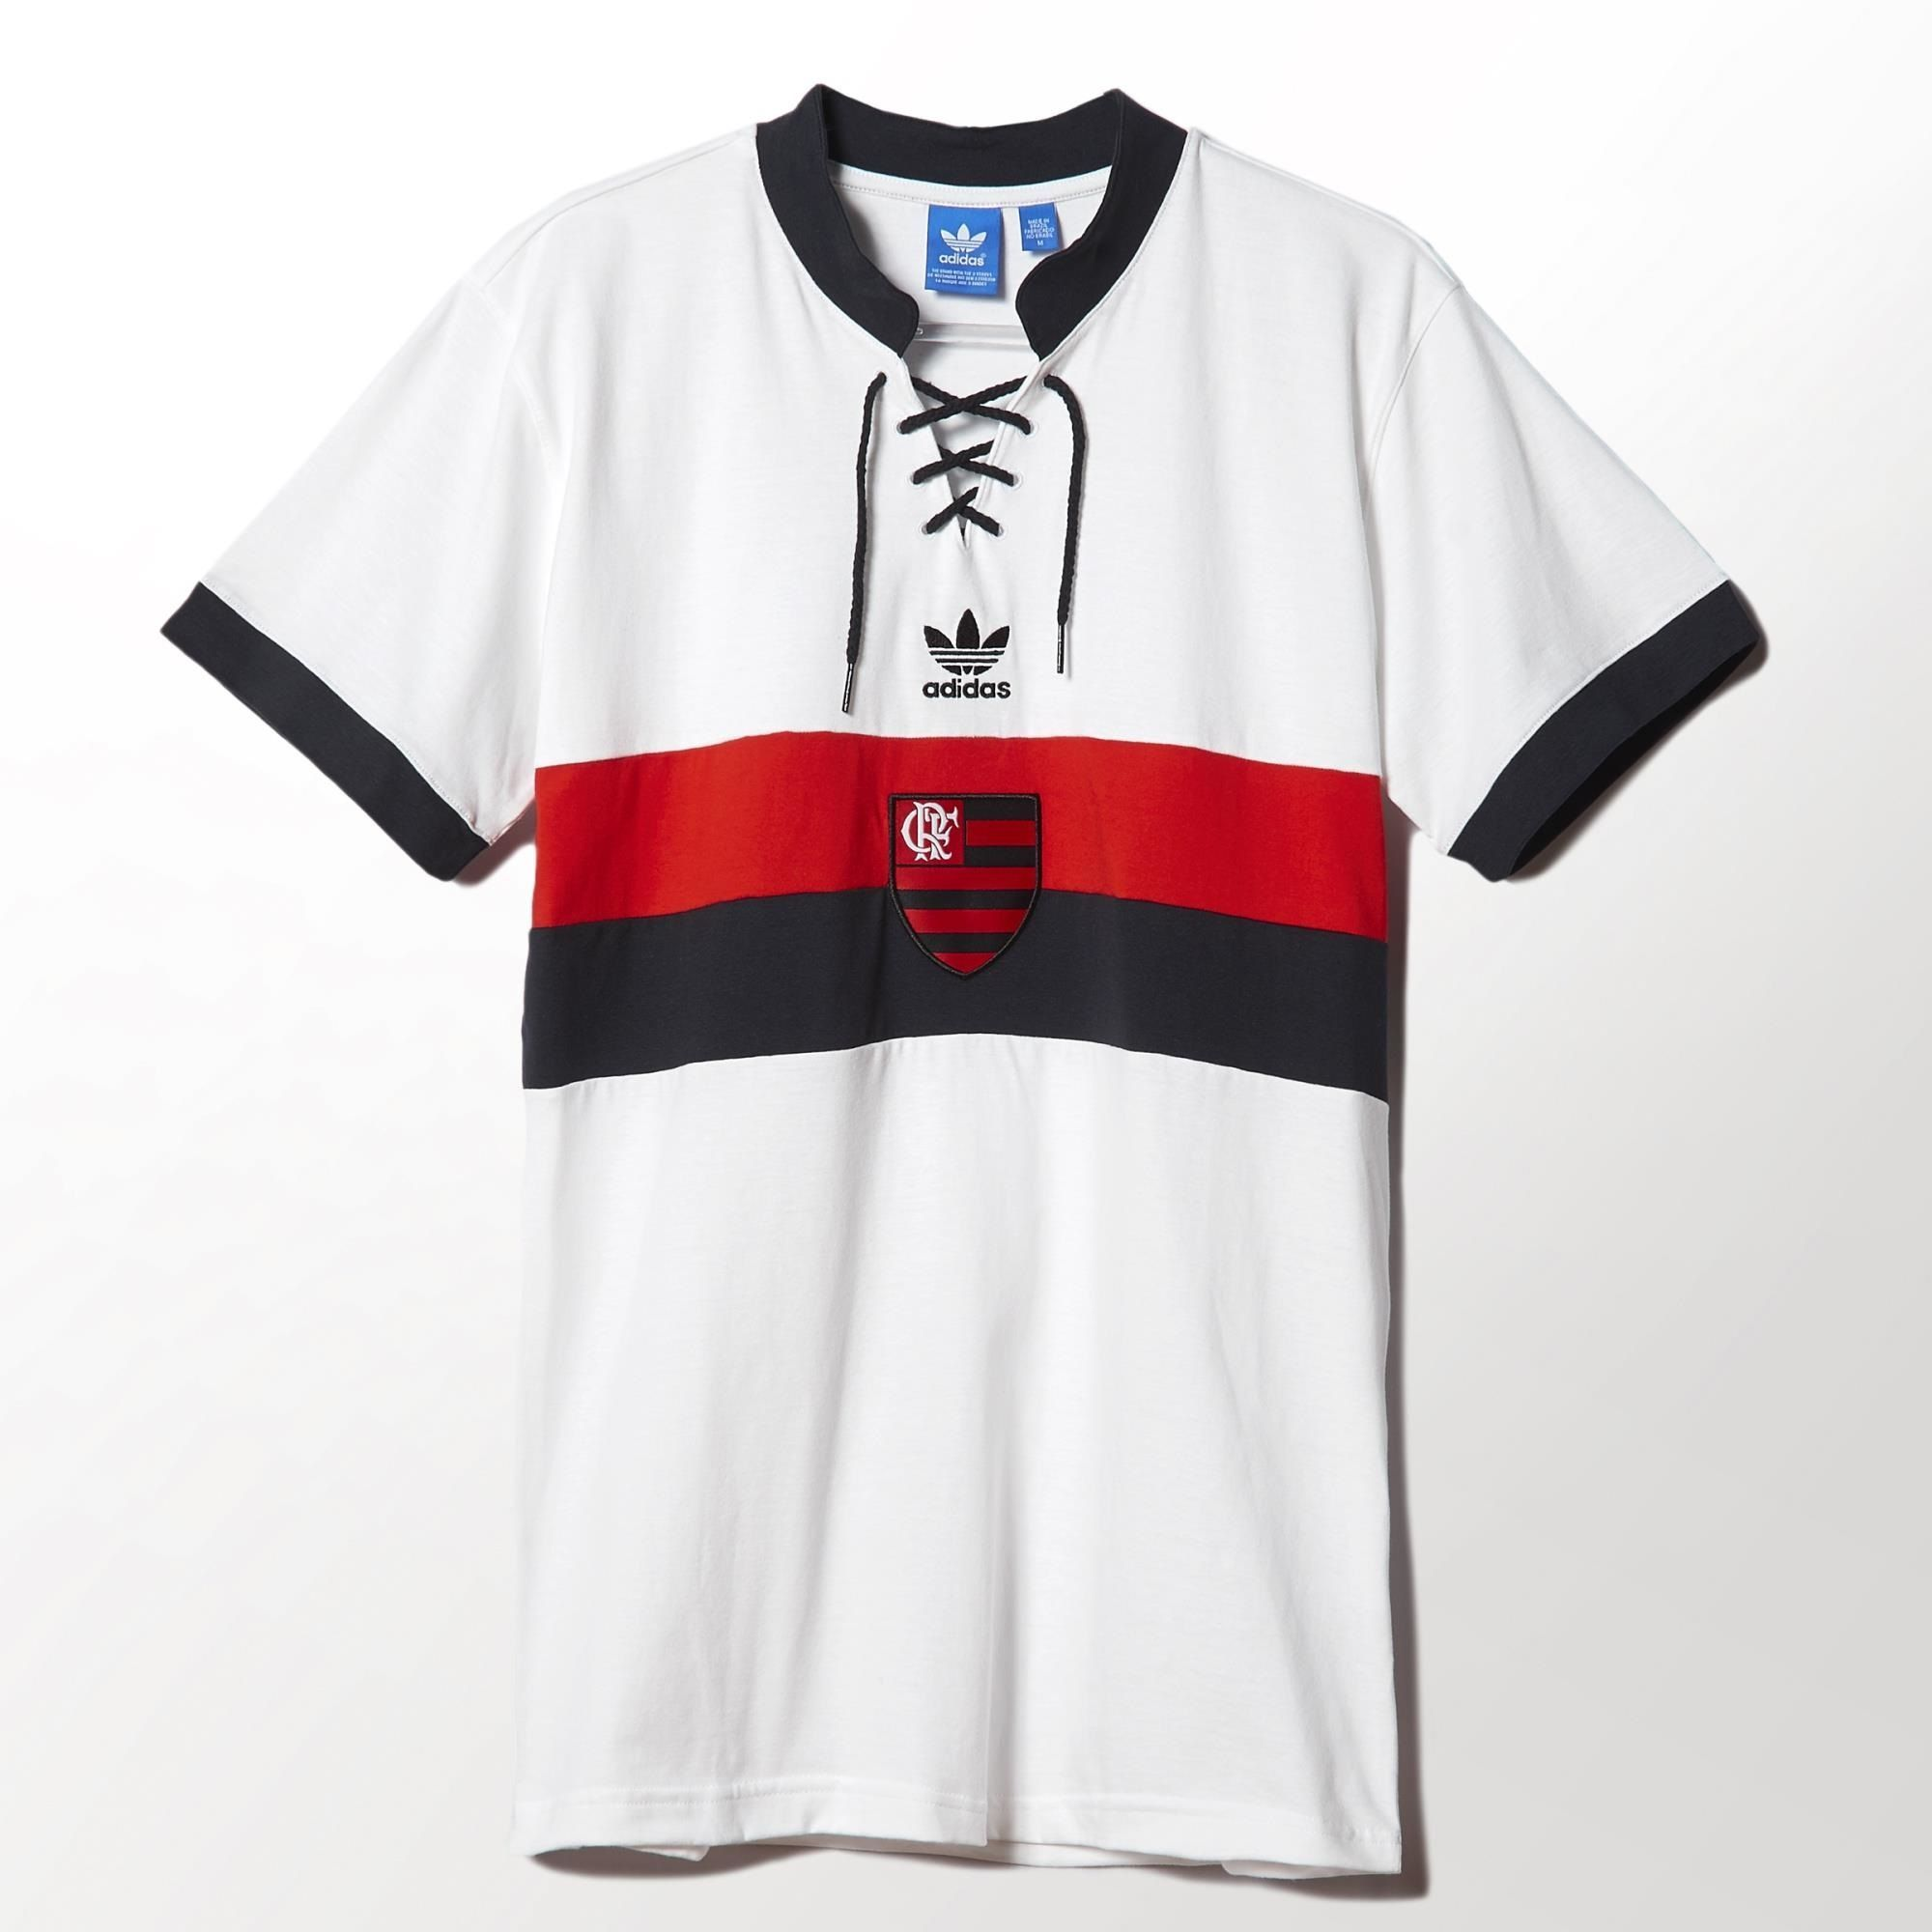 Adidas Flamengo Away Retro Shirt - White   Red   Black  21716f7765929